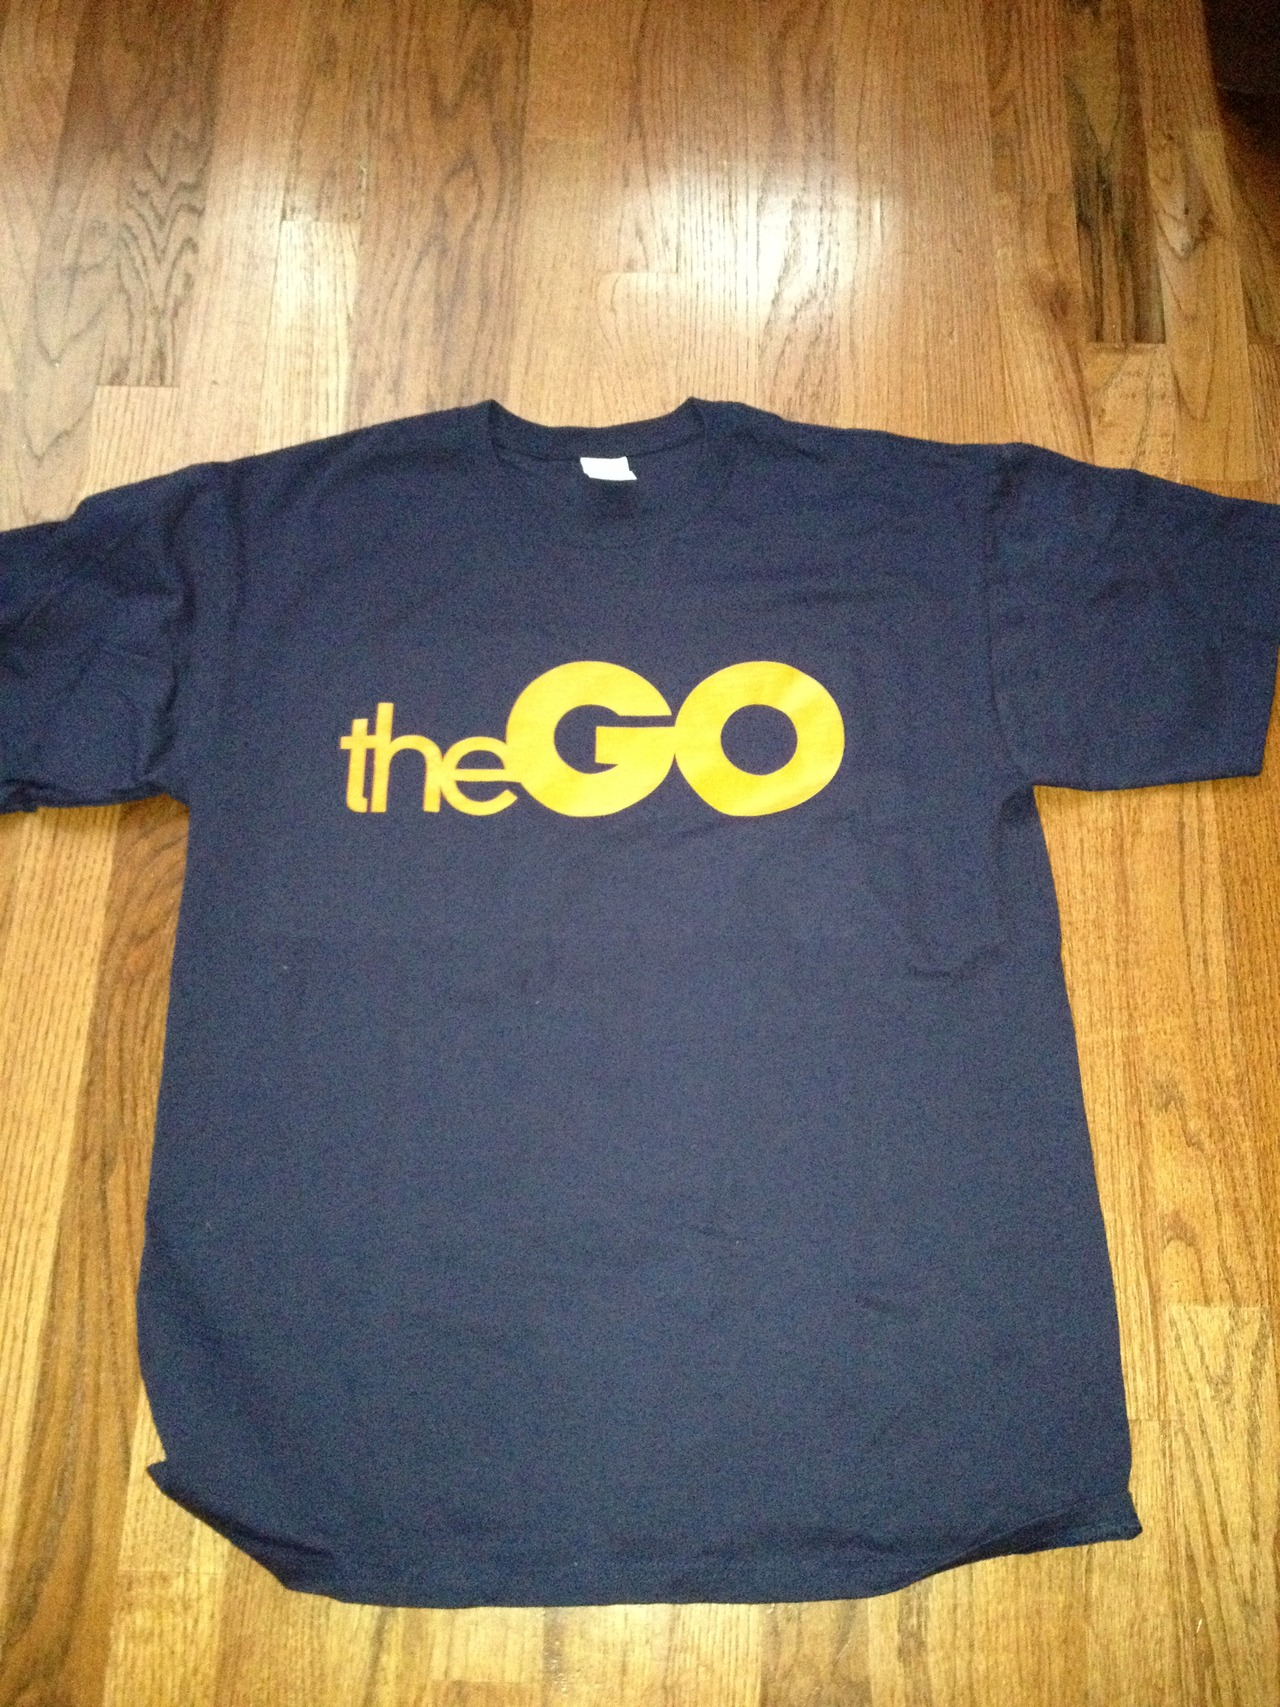 Limited Run of #theGOBearDown Chicago Bears colorway tee only 12 printed…get $10 off when entering code BeatGreen FREE SHIPPING AS WELL click the pic to go directly to the store!